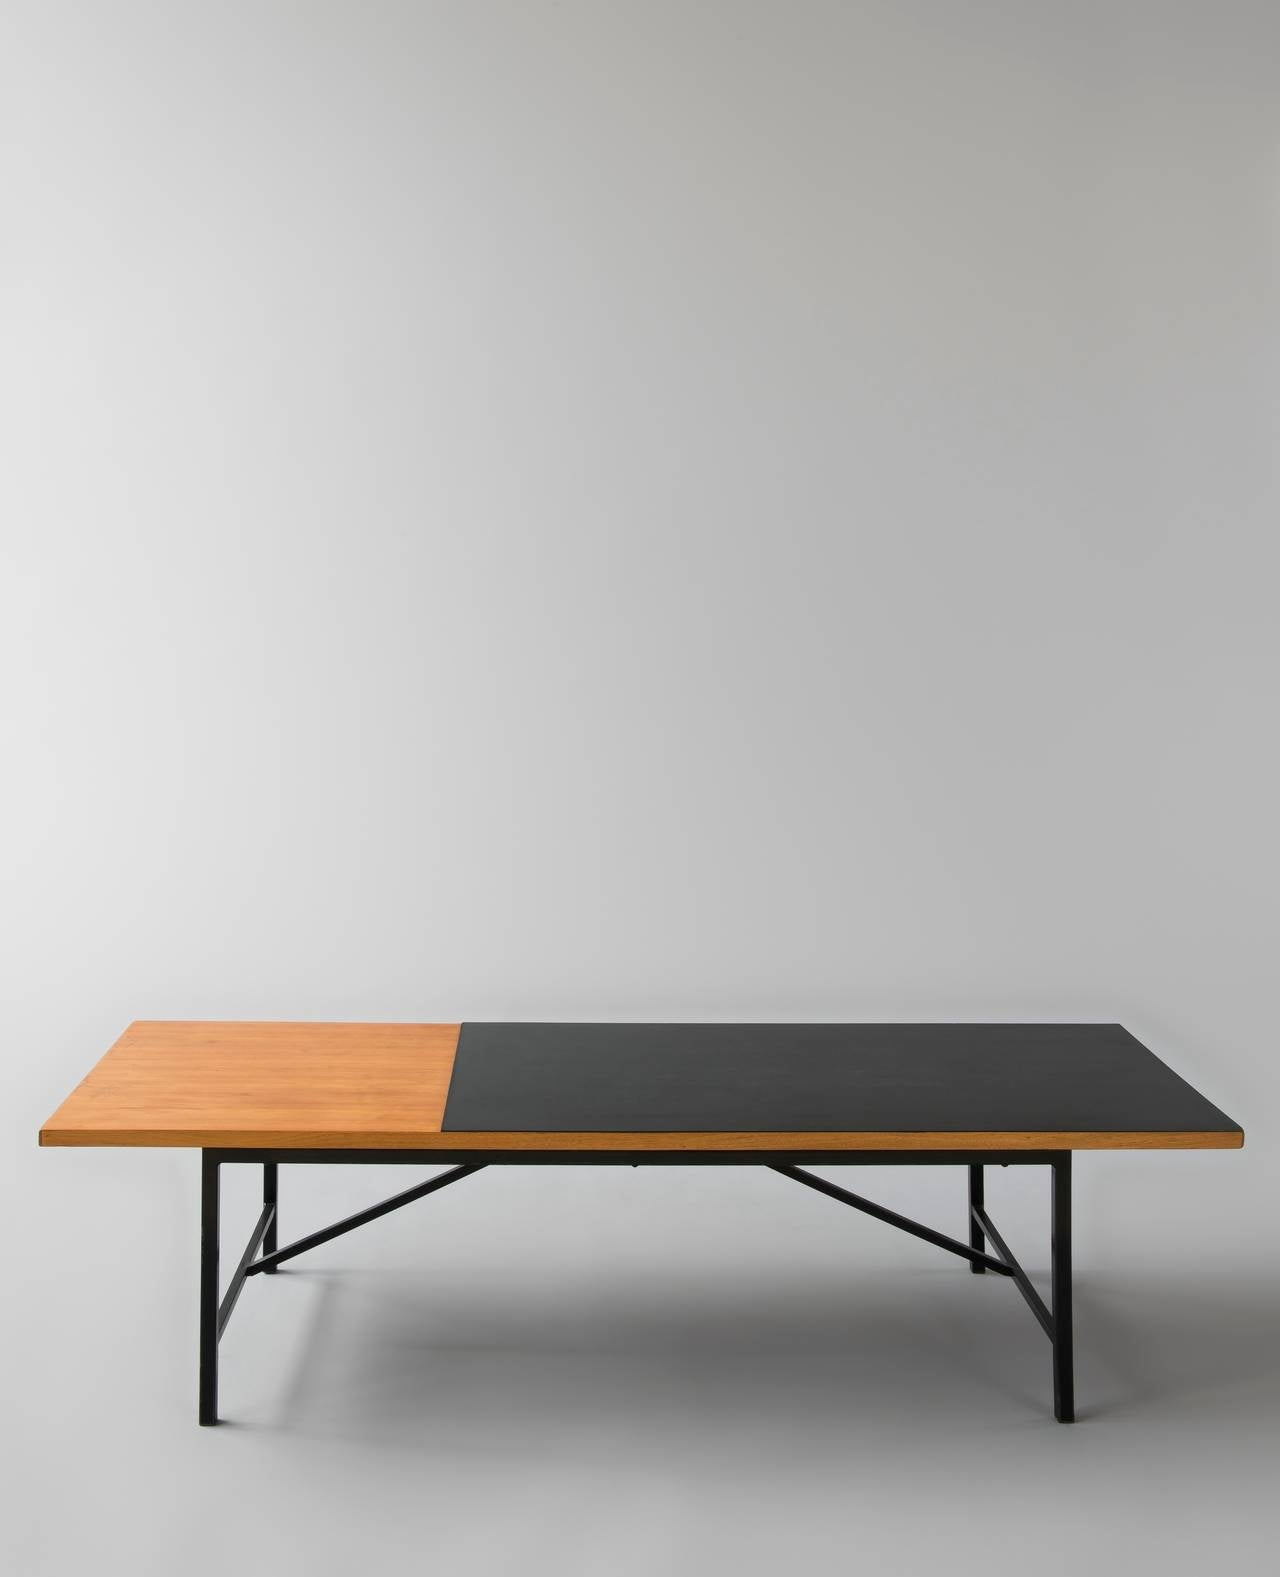 Low Table Bench By Andr Simard Andr Simard Edition Circa 1955 At 1stdibs